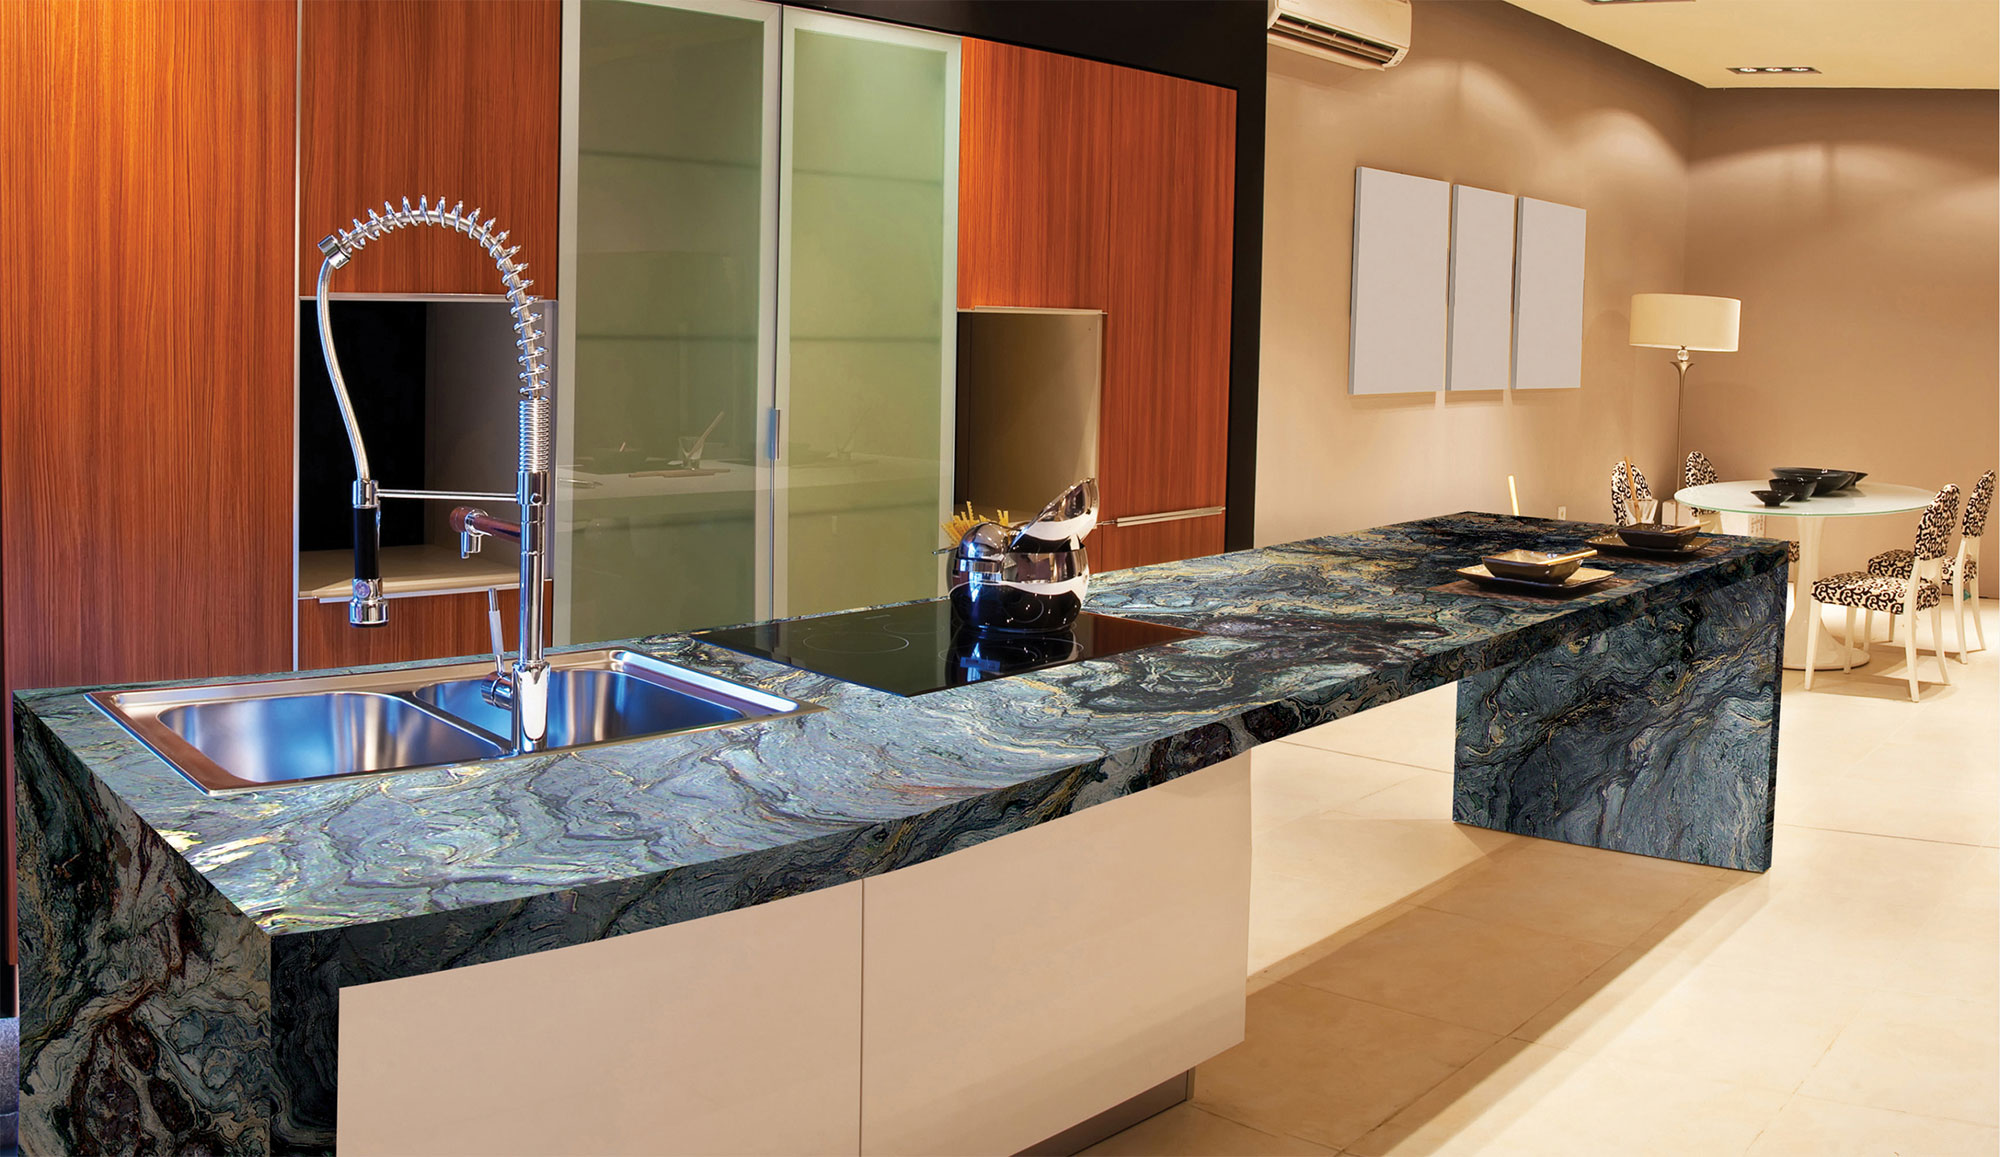 Granite CounteGranite Countertops in Mission Viejortops in Mission Viejo